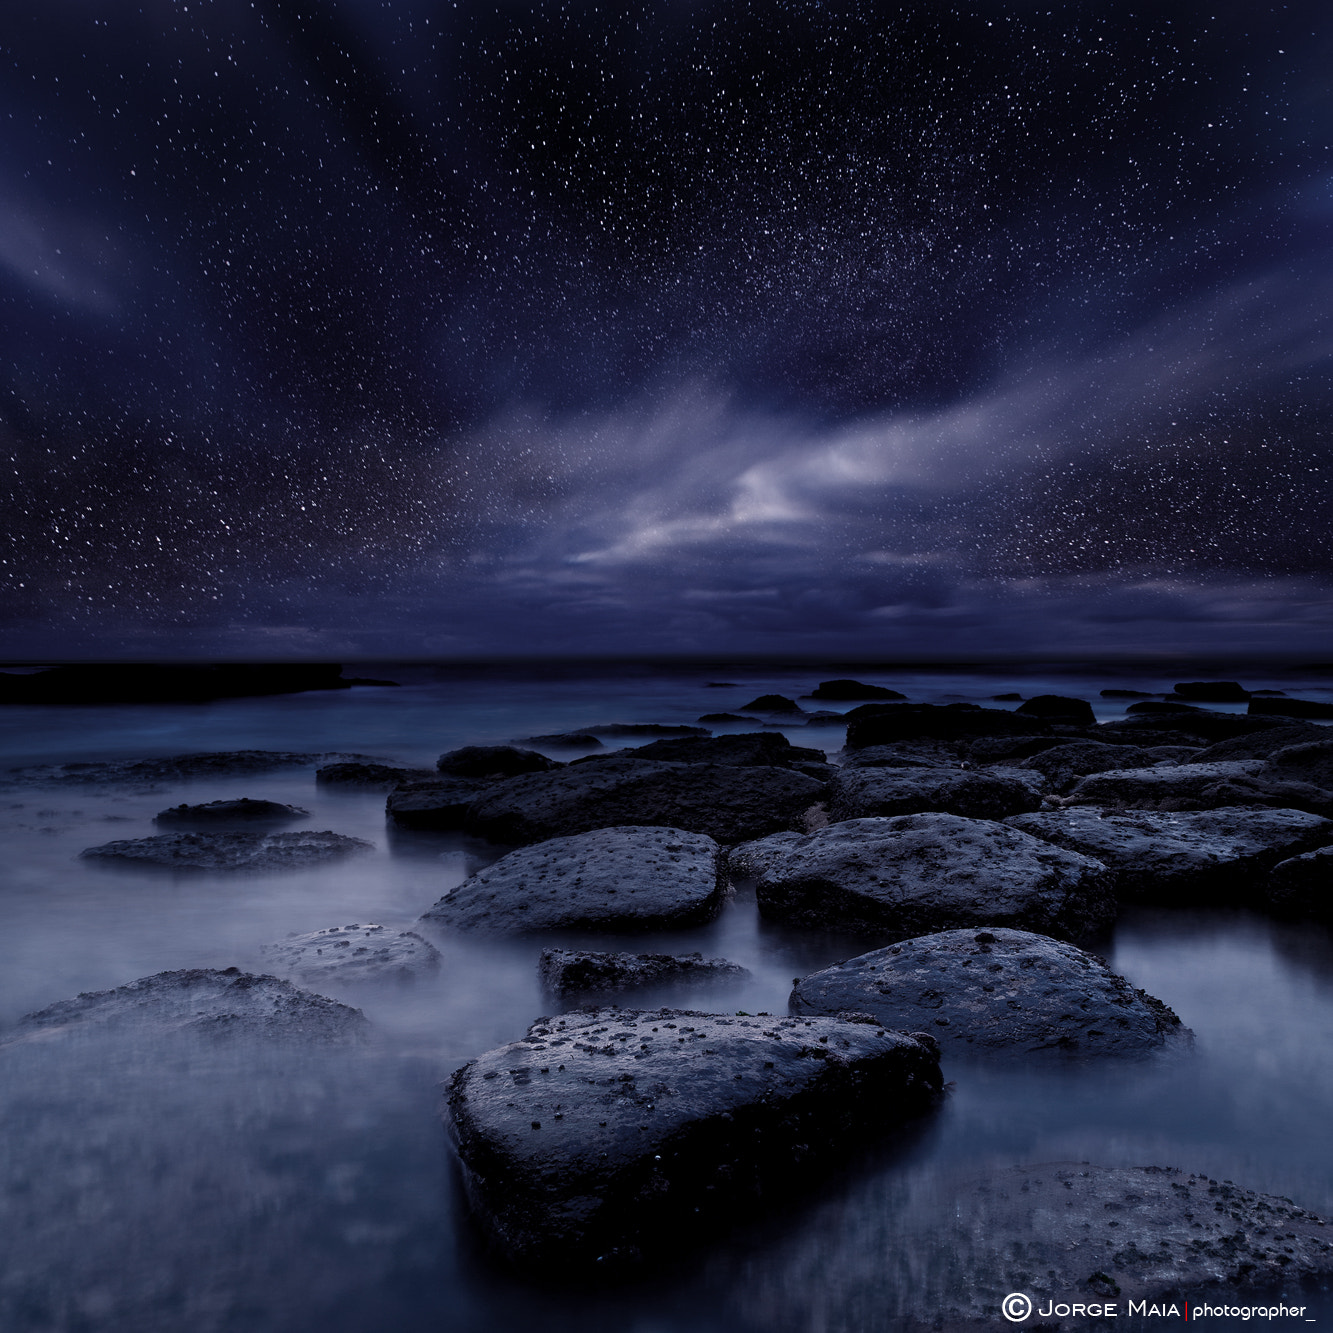 Photograph Night enigma by Jorge Maia on 500px